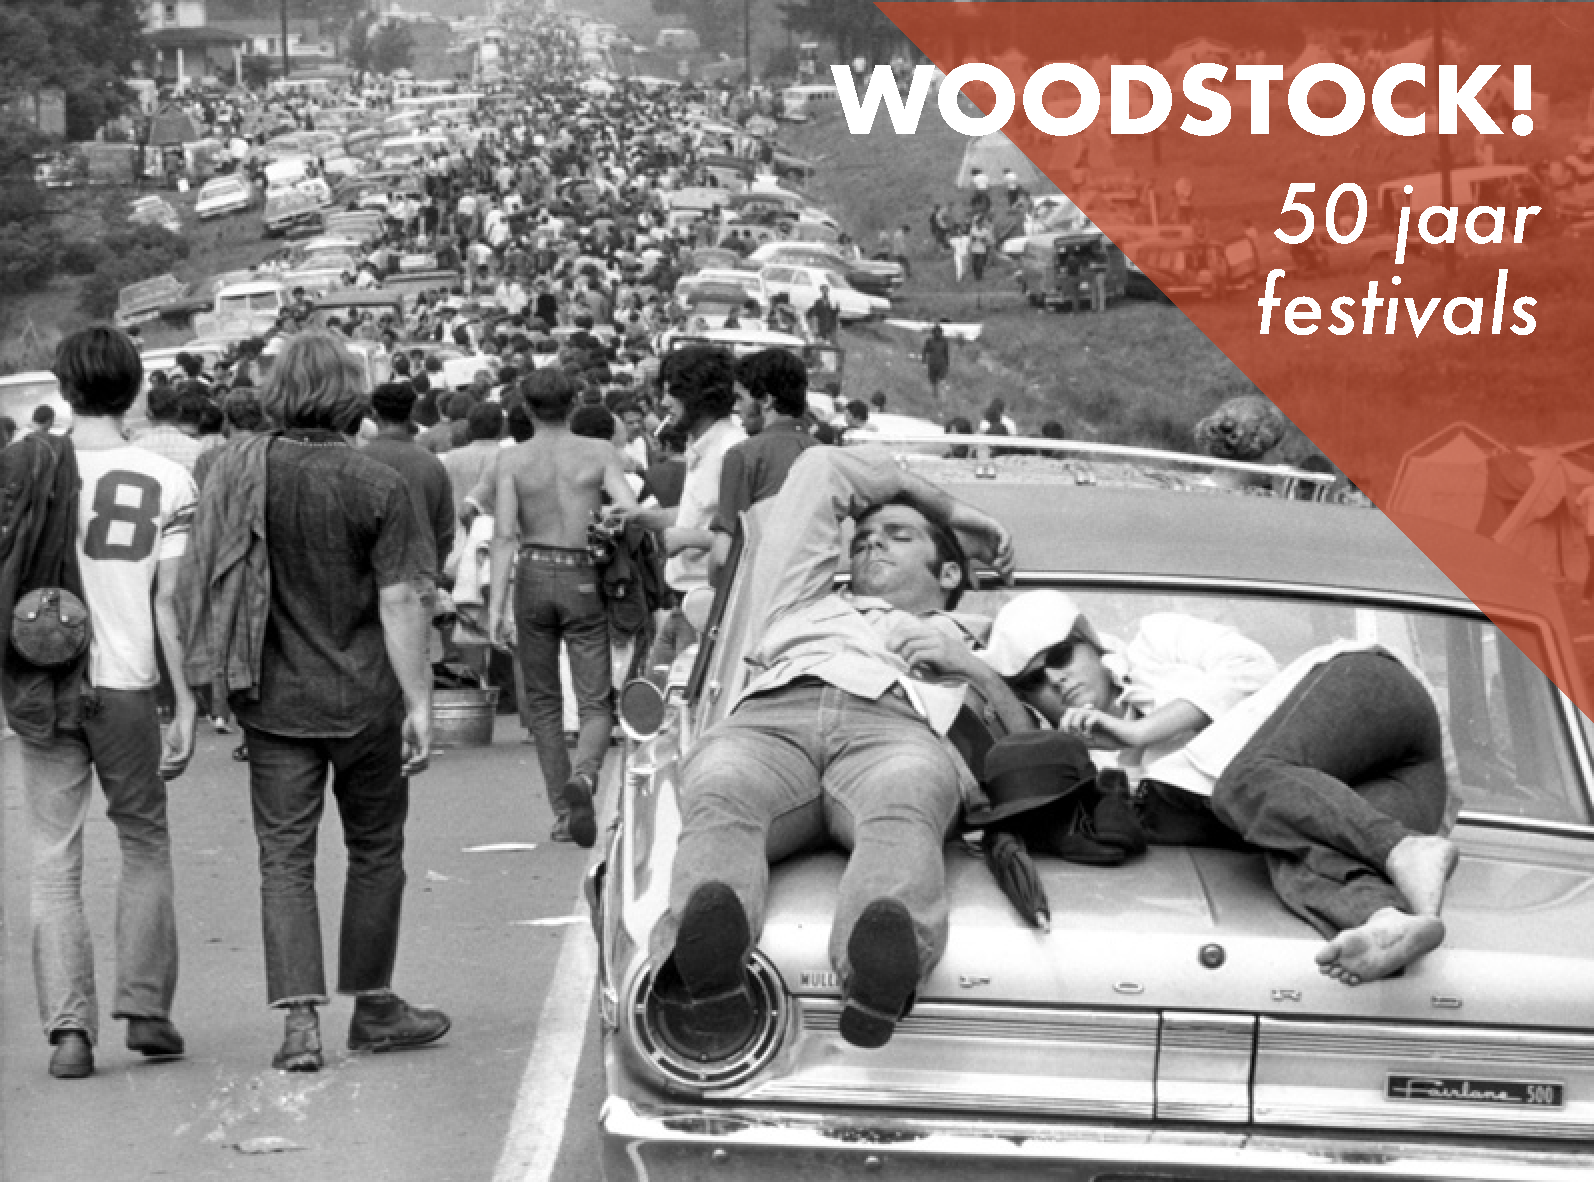 Woodstock en 50 jaar muziekfestivals sindsdien.  Woodstock and 50 years of music festivals since.    See more